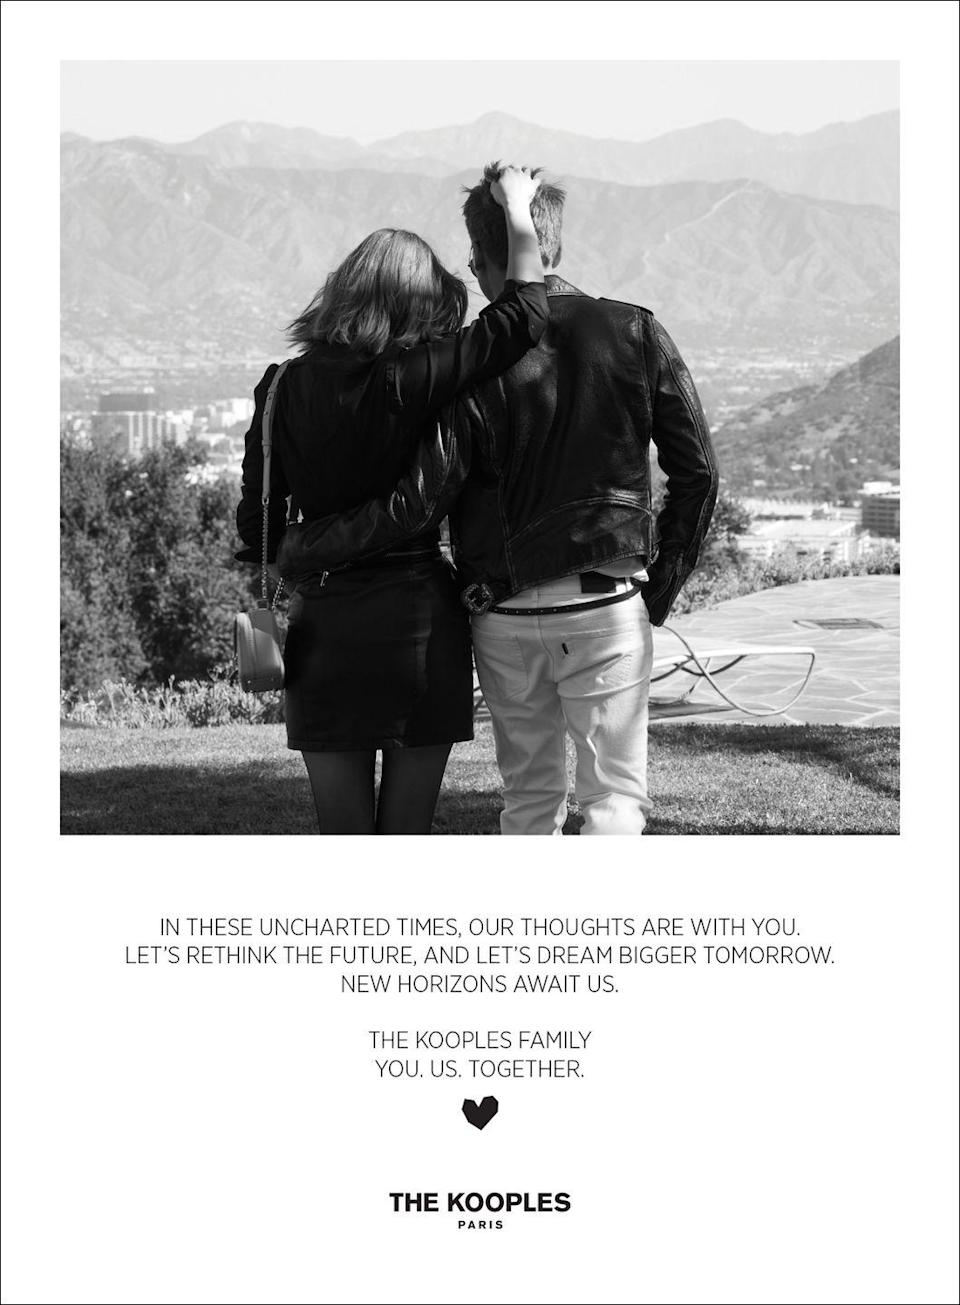 <p>In these uncharted times, our thoughts are with you. Let's rethink the future, and let's dream bigger tomorrow. New horizons await us.</p><p><em>The Kooples Family<br>You. Us. Together.</em></p>